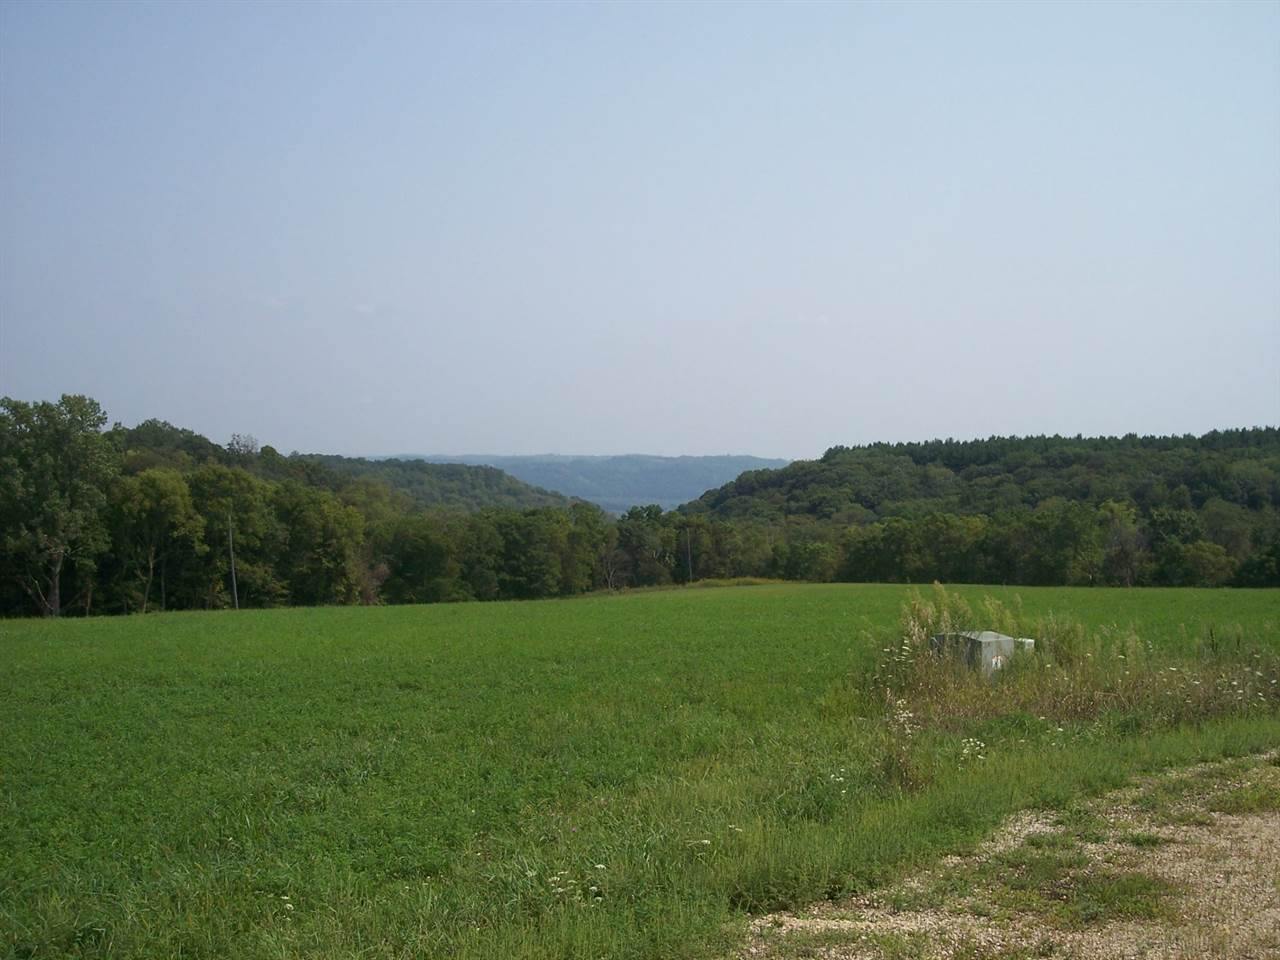 LOT 23 TWO RIVERS, HARPERS FERRY, Iowa 52146, ,Lots And Land,For Sale,LOT 23 TWO RIVERS,20155848